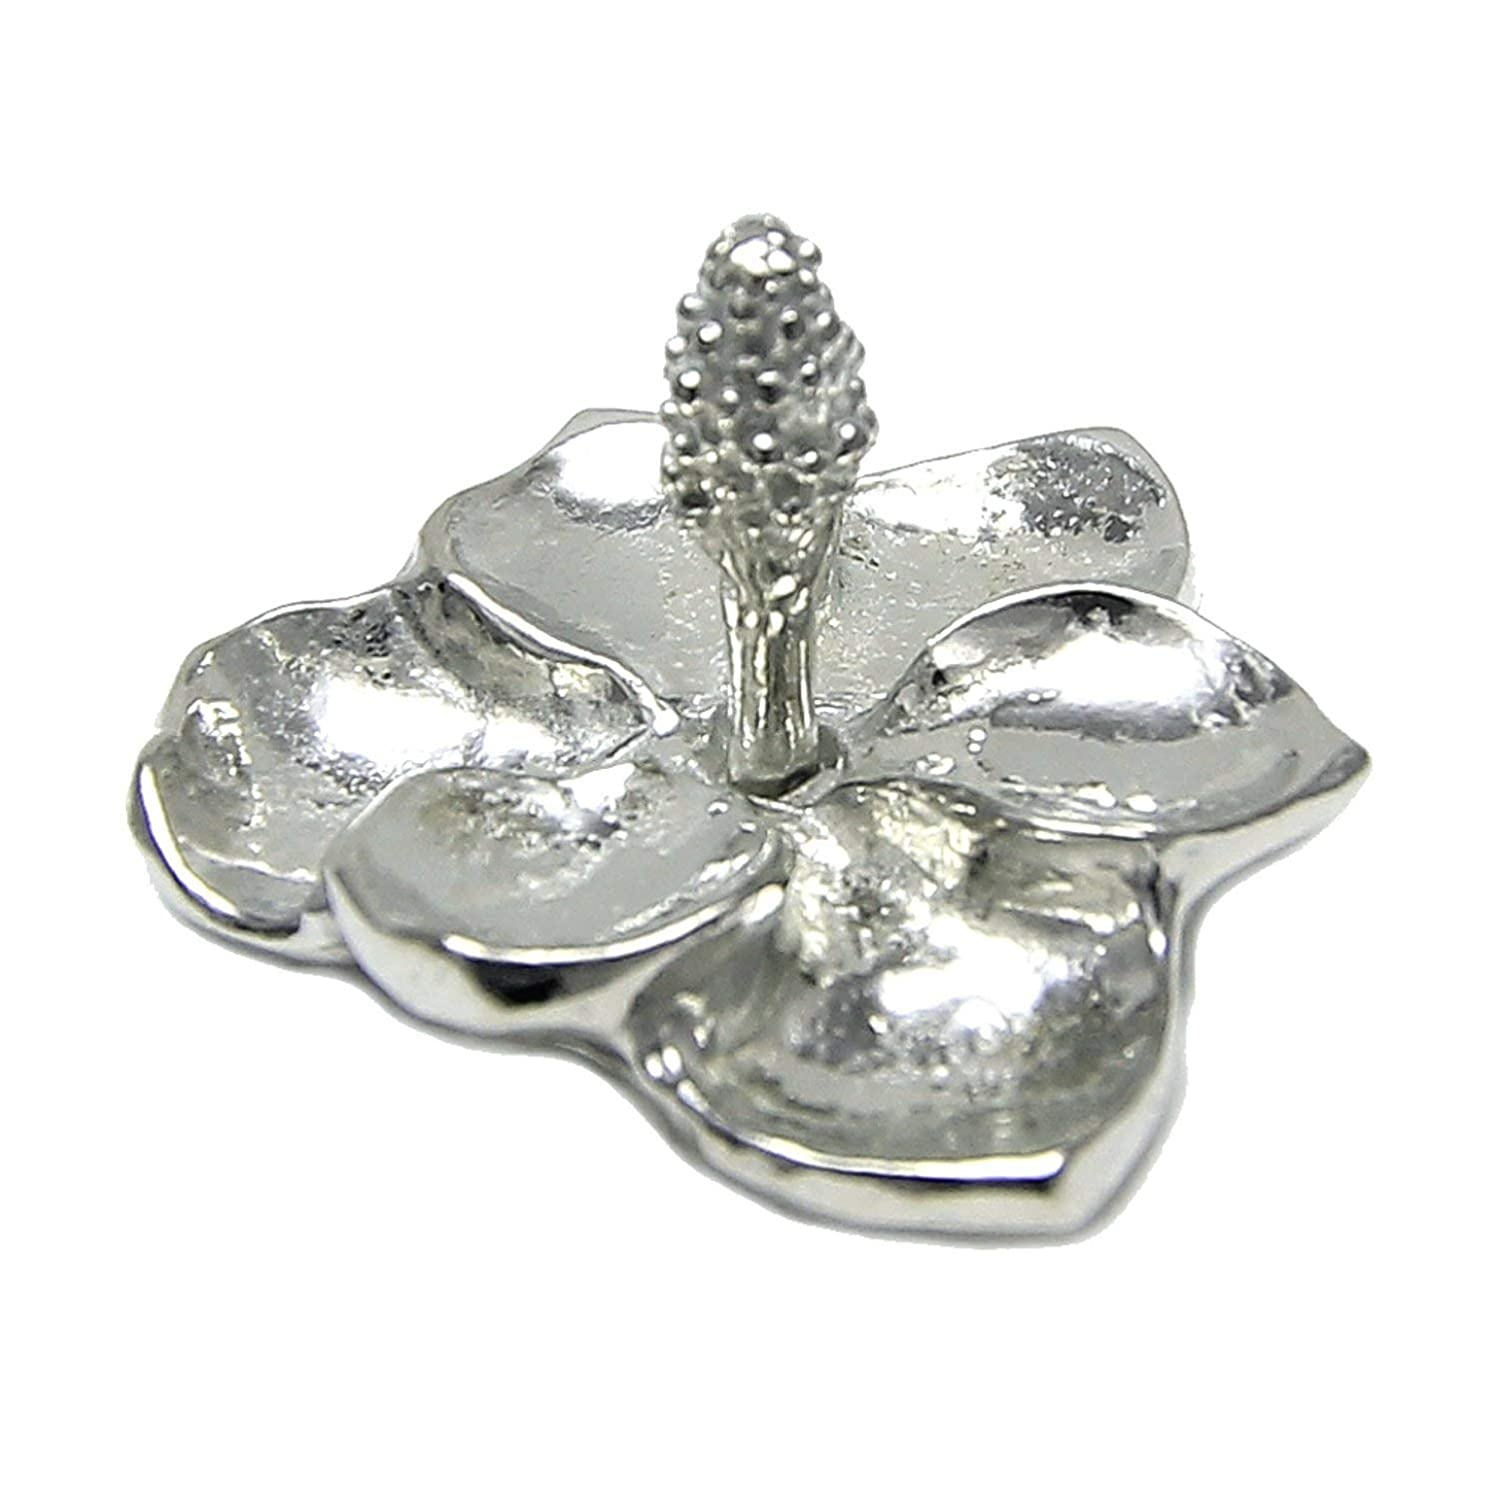 Pewter Magnolia Flower Ring Holder - Tiny Ring Stand Gift Boxed with Steel Magnolias Story Card - Handcrafted in USA